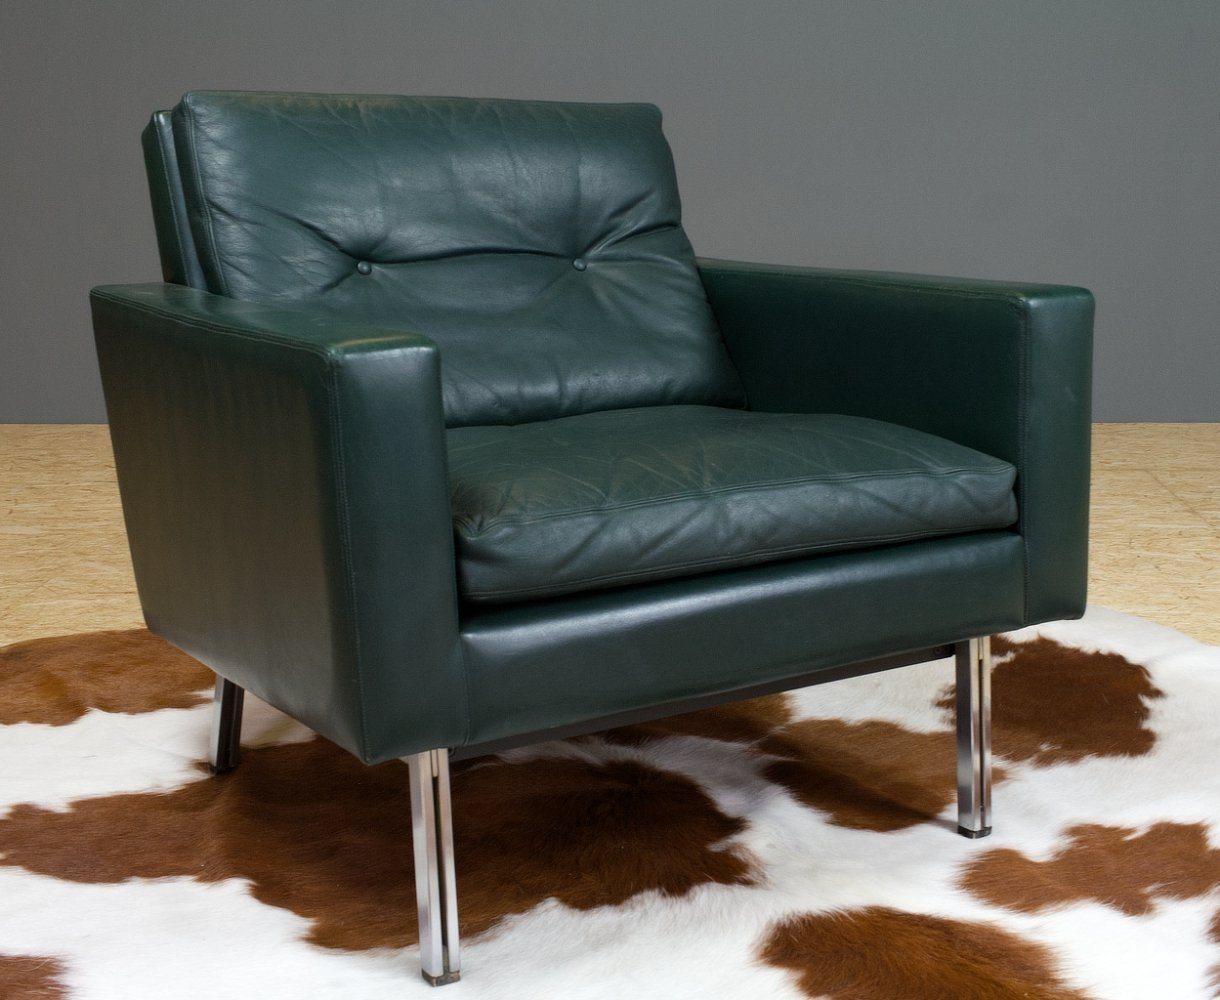 AP Originals green leather Lounge chair by Hein Salomonsson, late 60s